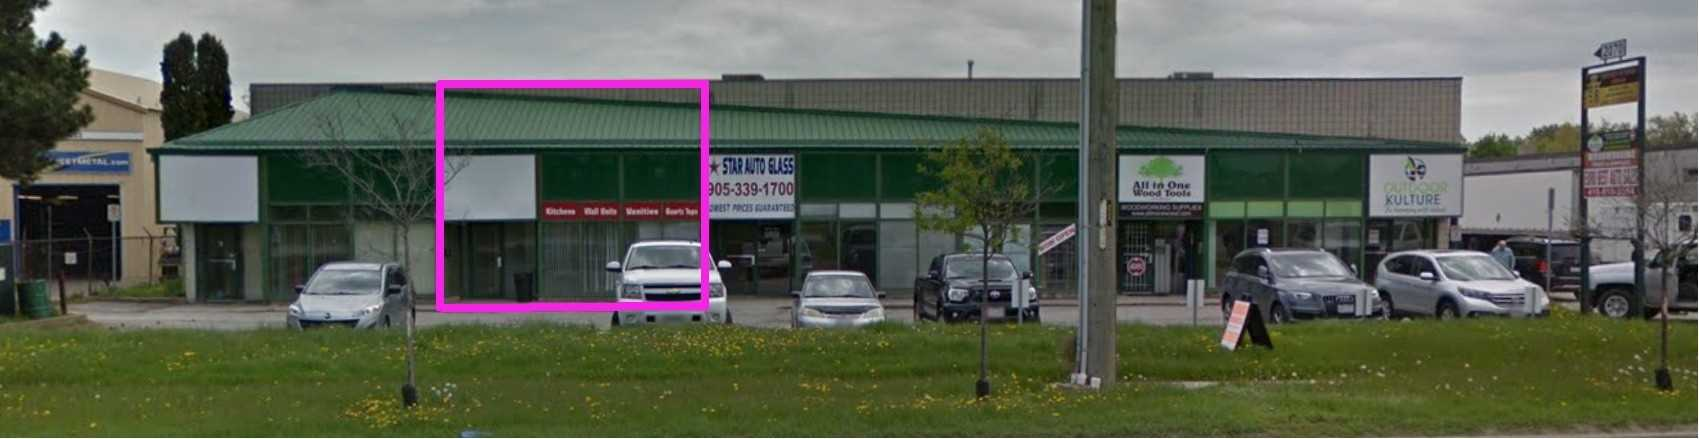 2070 Speers Rd, Oakville, L6L 2X8, ,1 BathroomBathrooms,Commercial/Retail,For Lease,Speers,W4677071